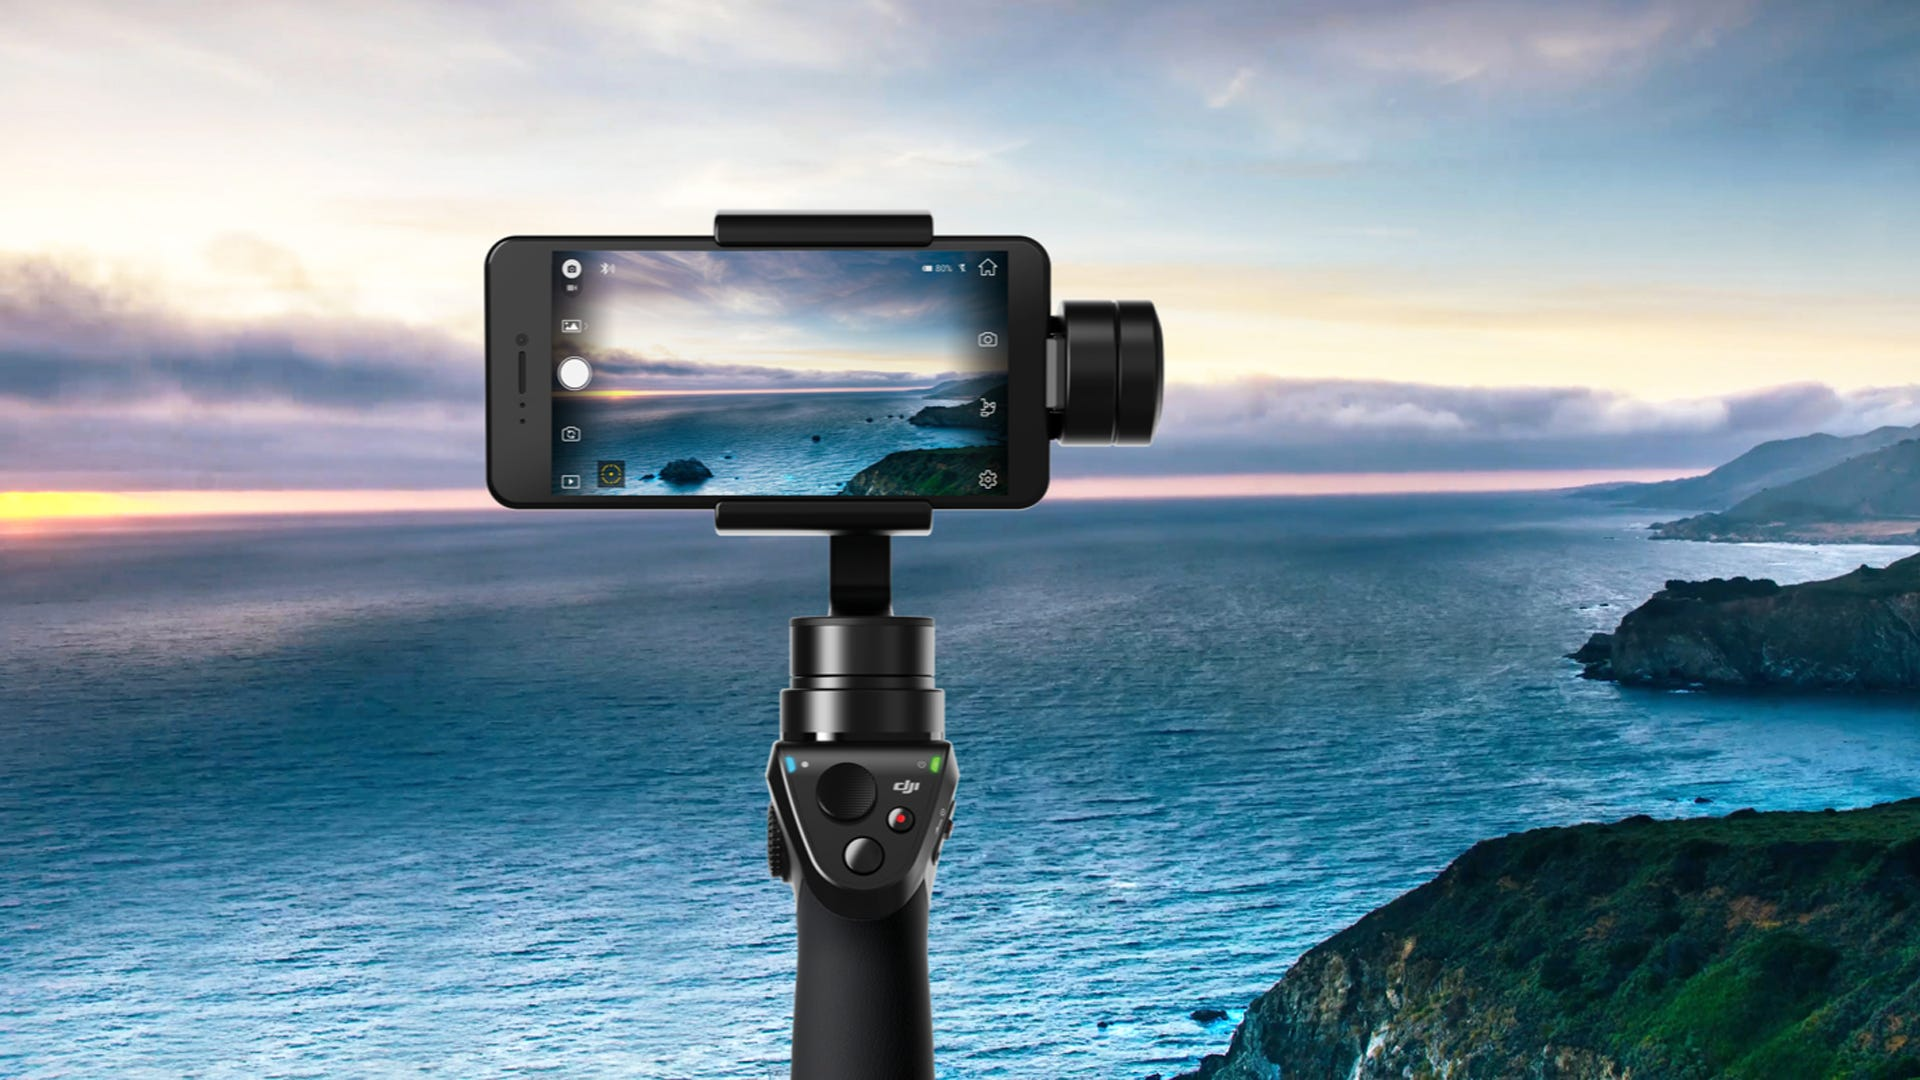 DJI's Osmo Mobile and Osmo+: Handheld Stabilization for your